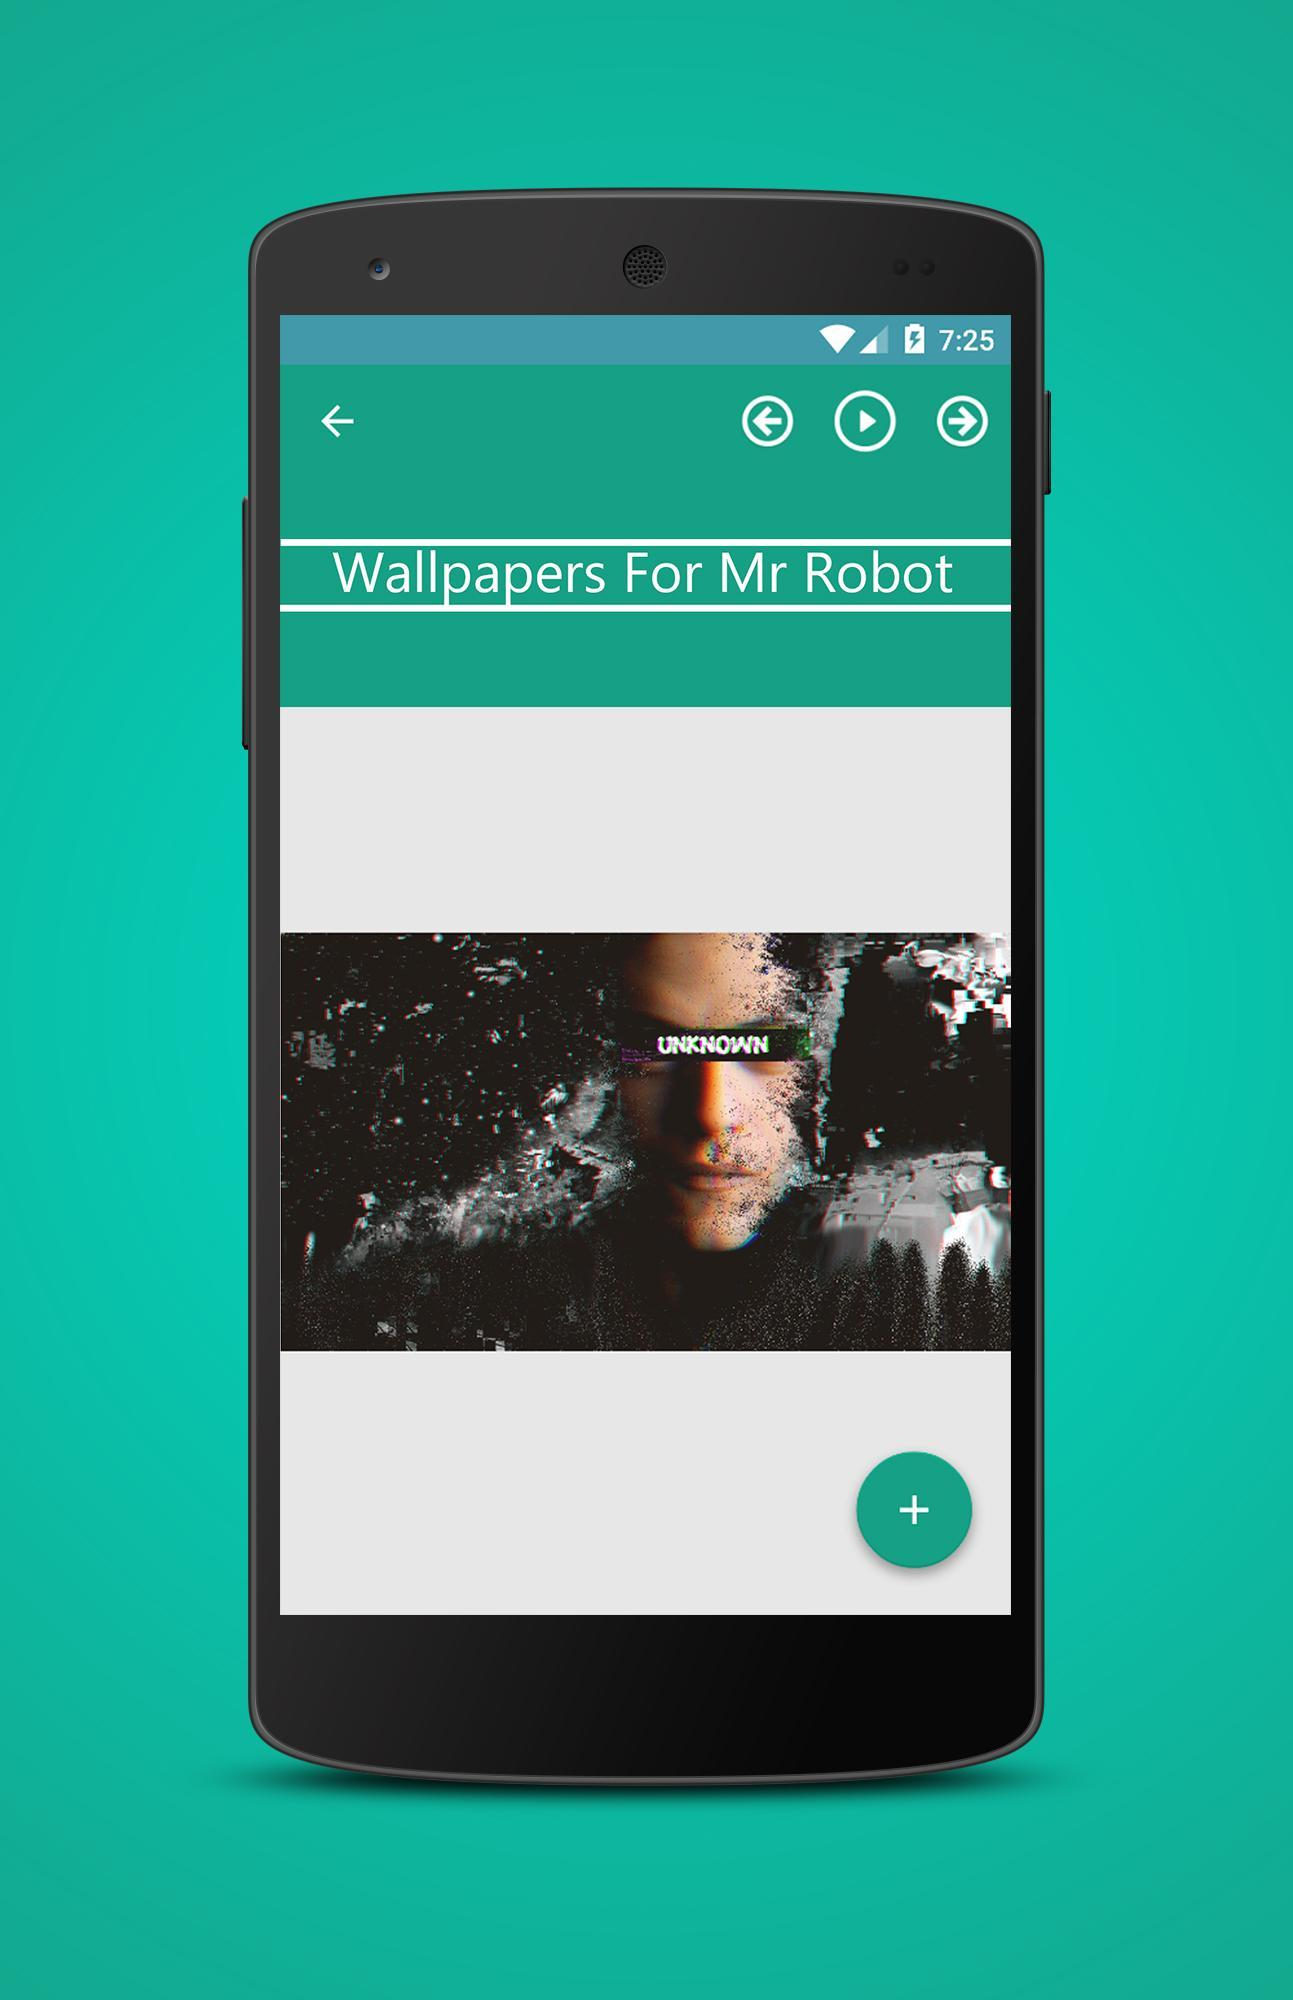 Wallpapers For Mr Robot For Android Apk Download